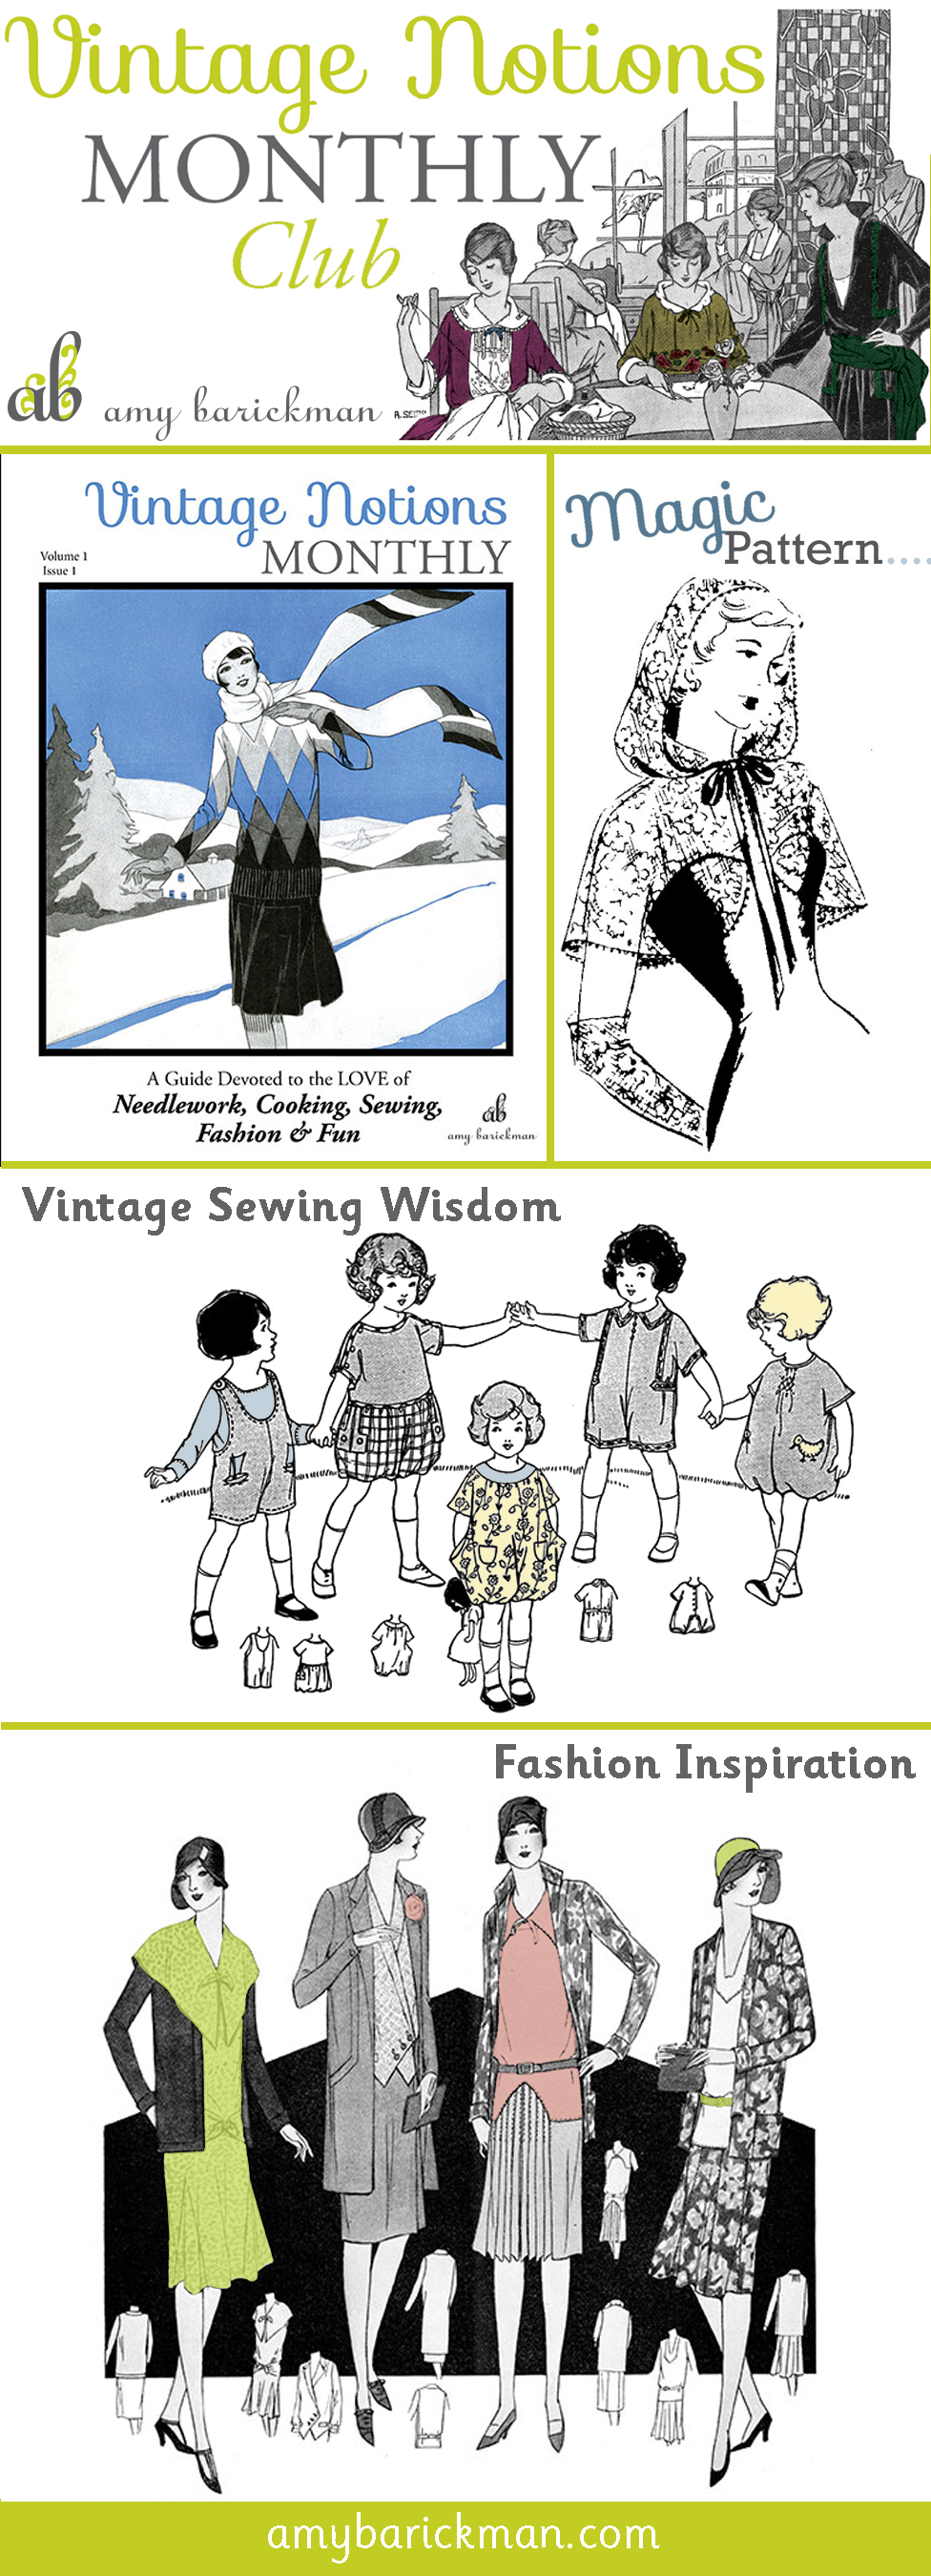 Vintage Notions Monthly is a magazine that celebrates the love of Needlework, Cooking, Sewing, Fashion and Fun!